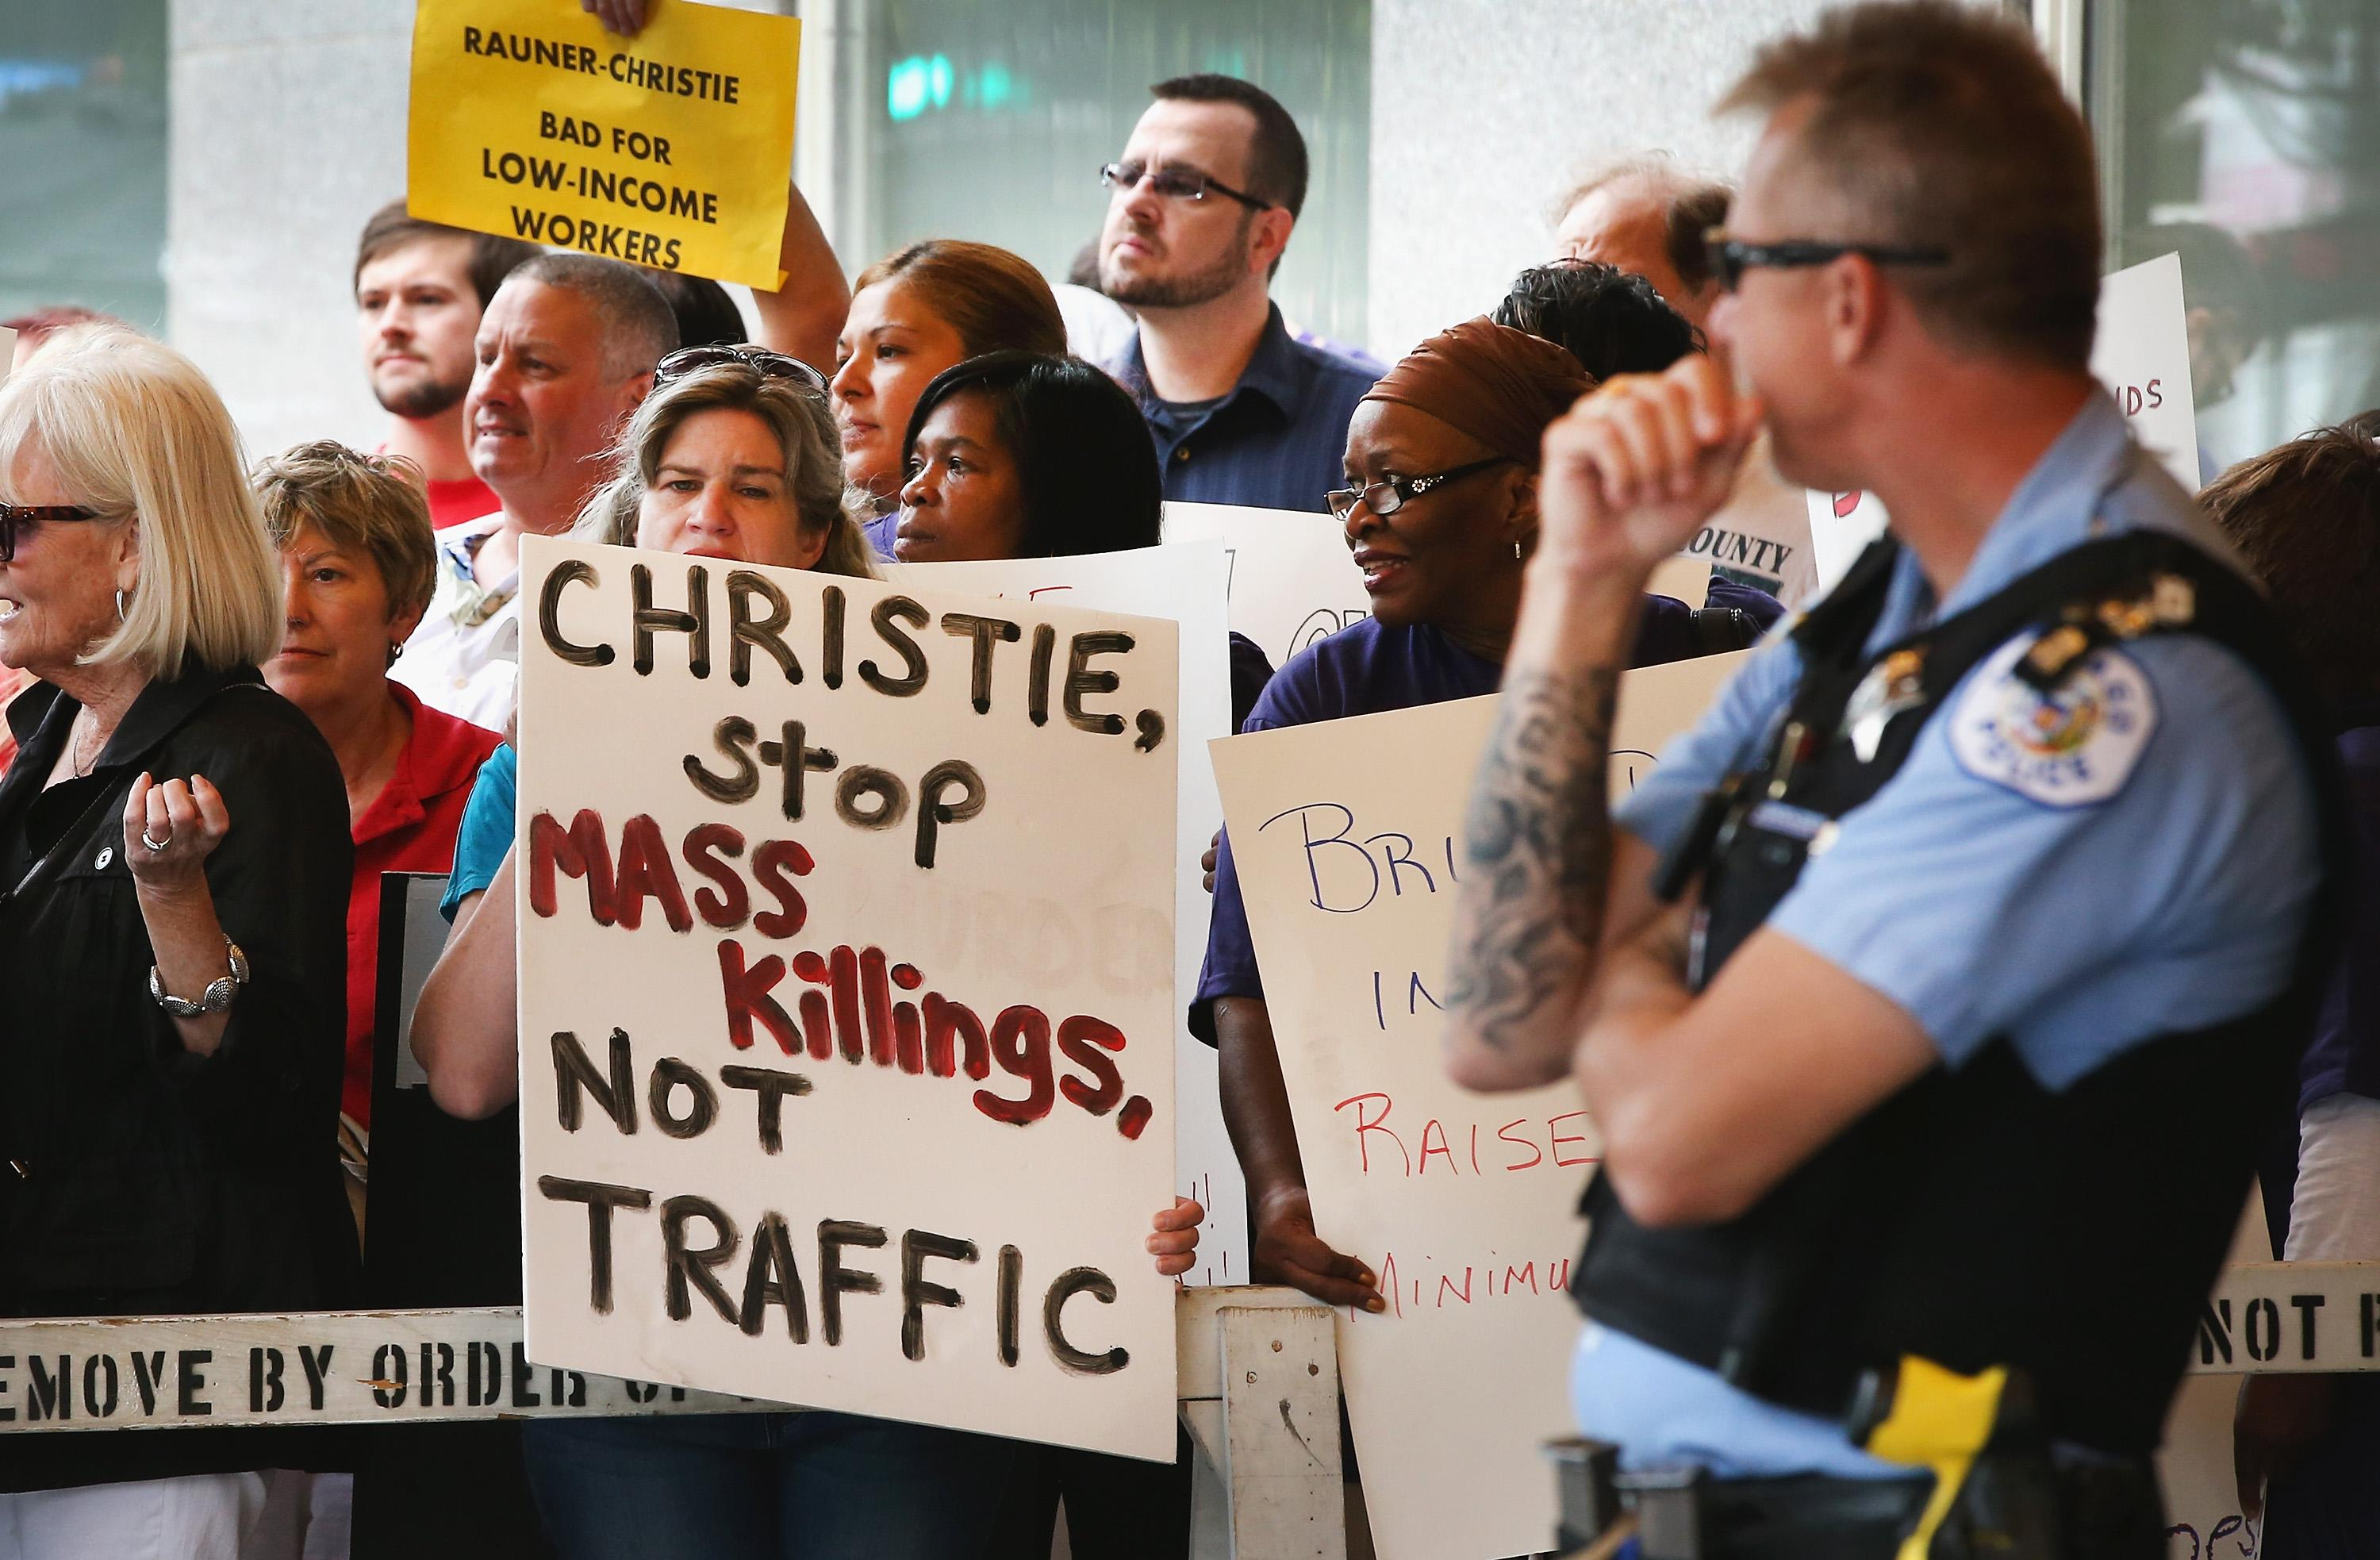 Chicago Demonstration, Chris Christie, July 25, 2014